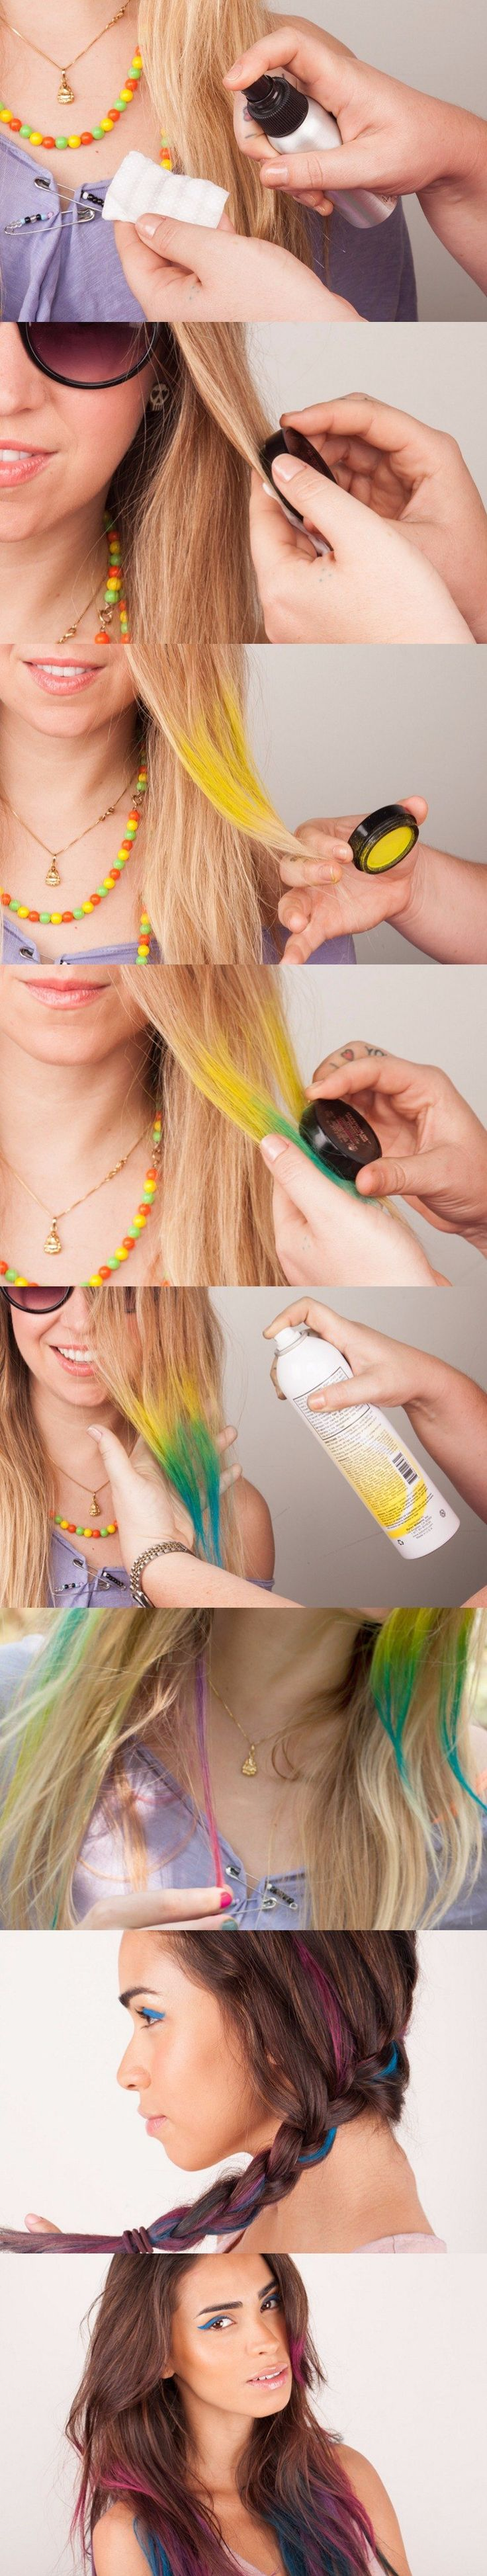 224 best DIY HAIR STYLES images on Pinterest